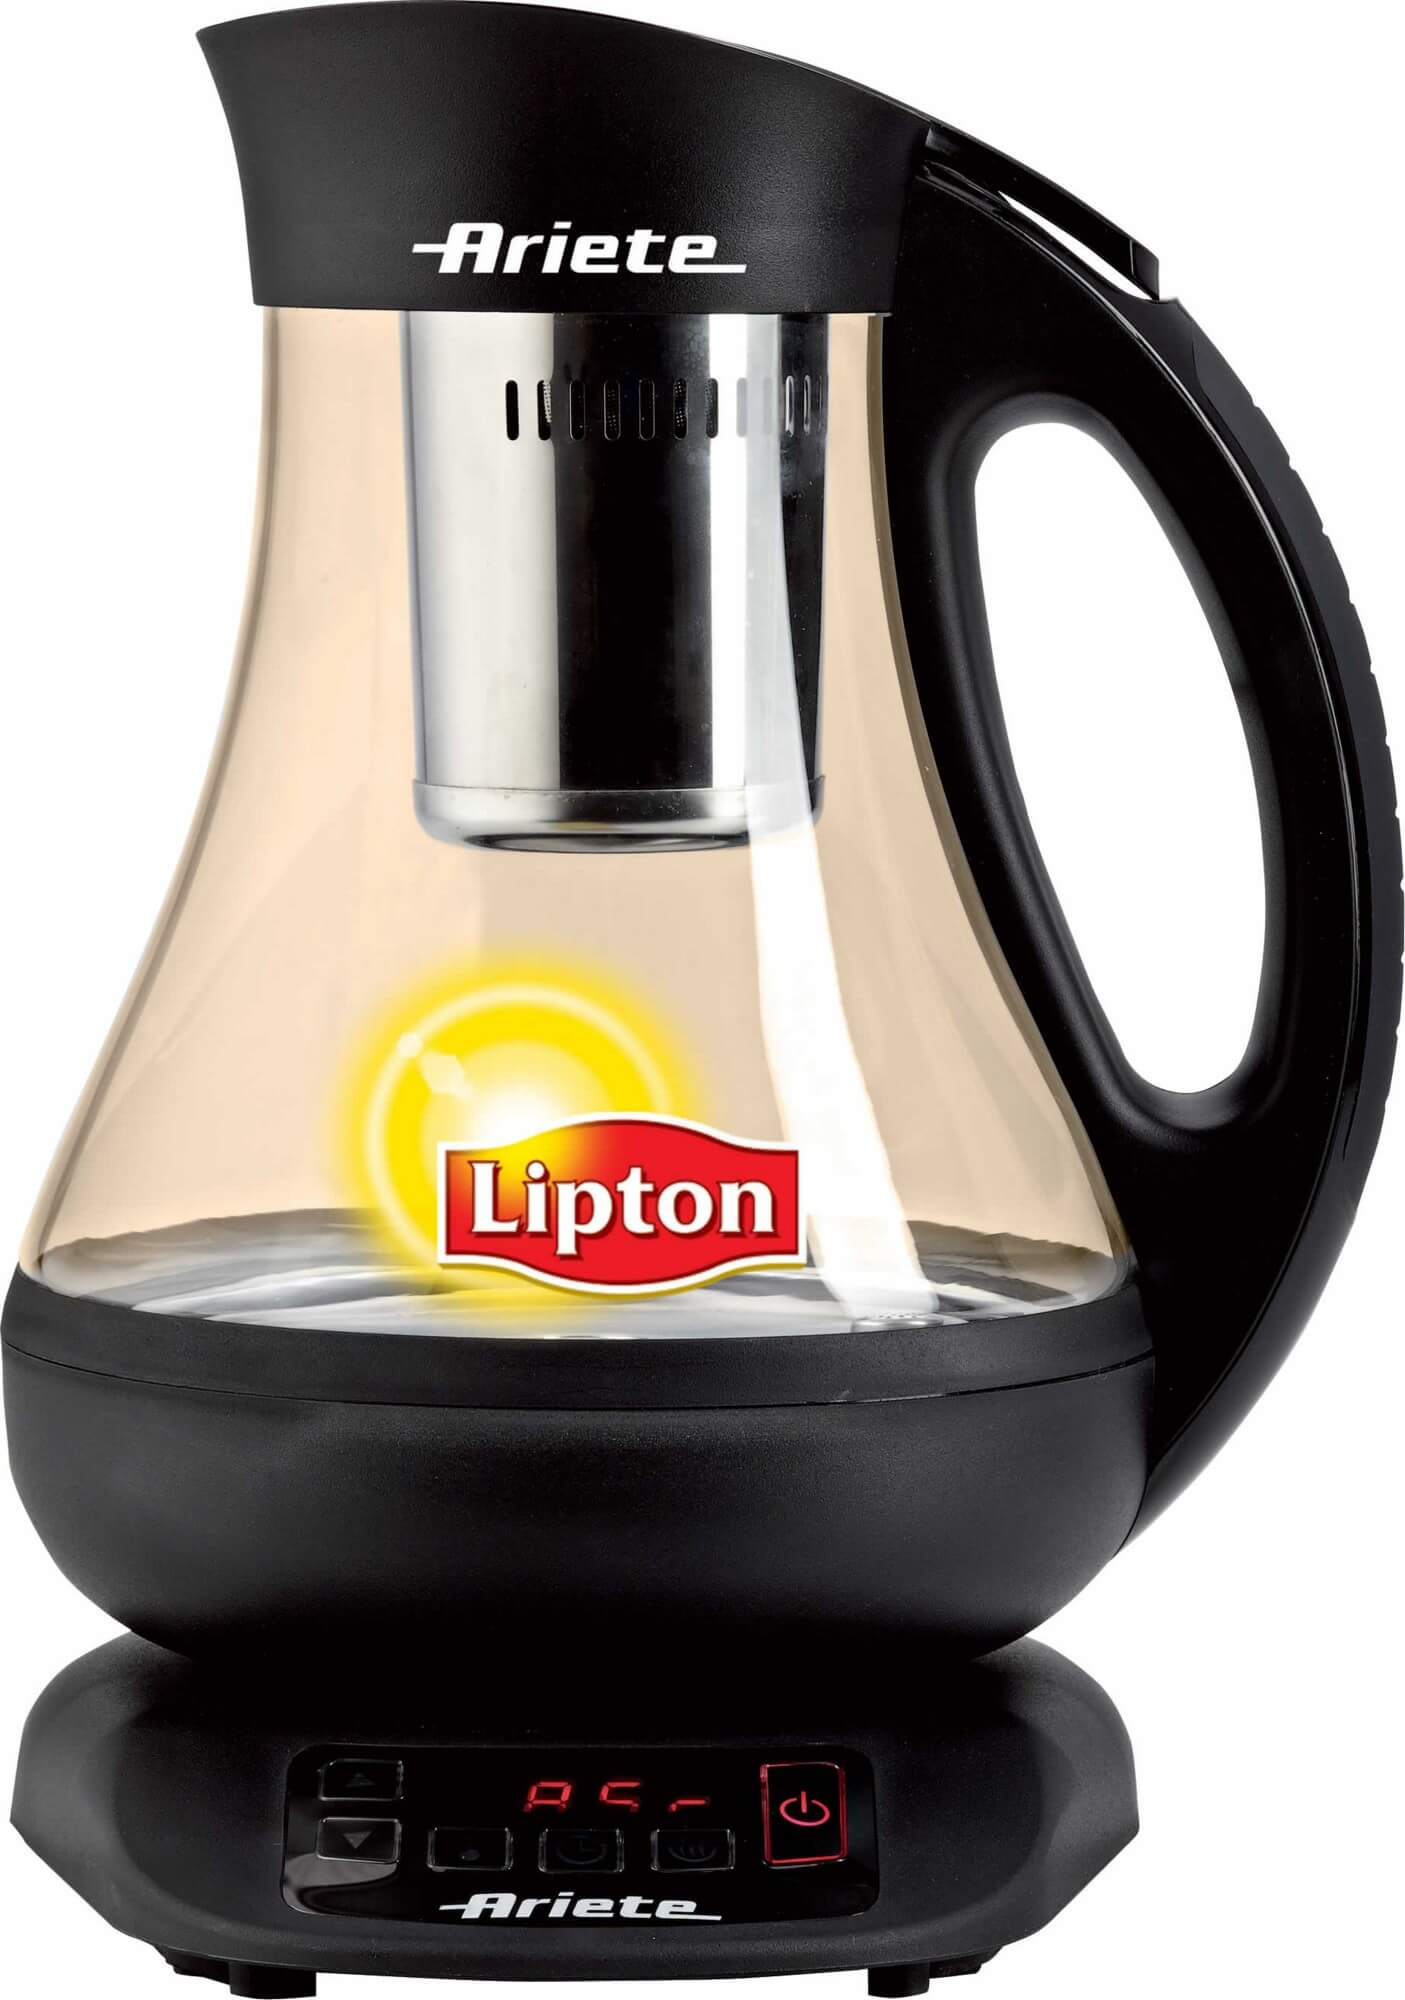 Ariete Automatic Tea Maker Lipton